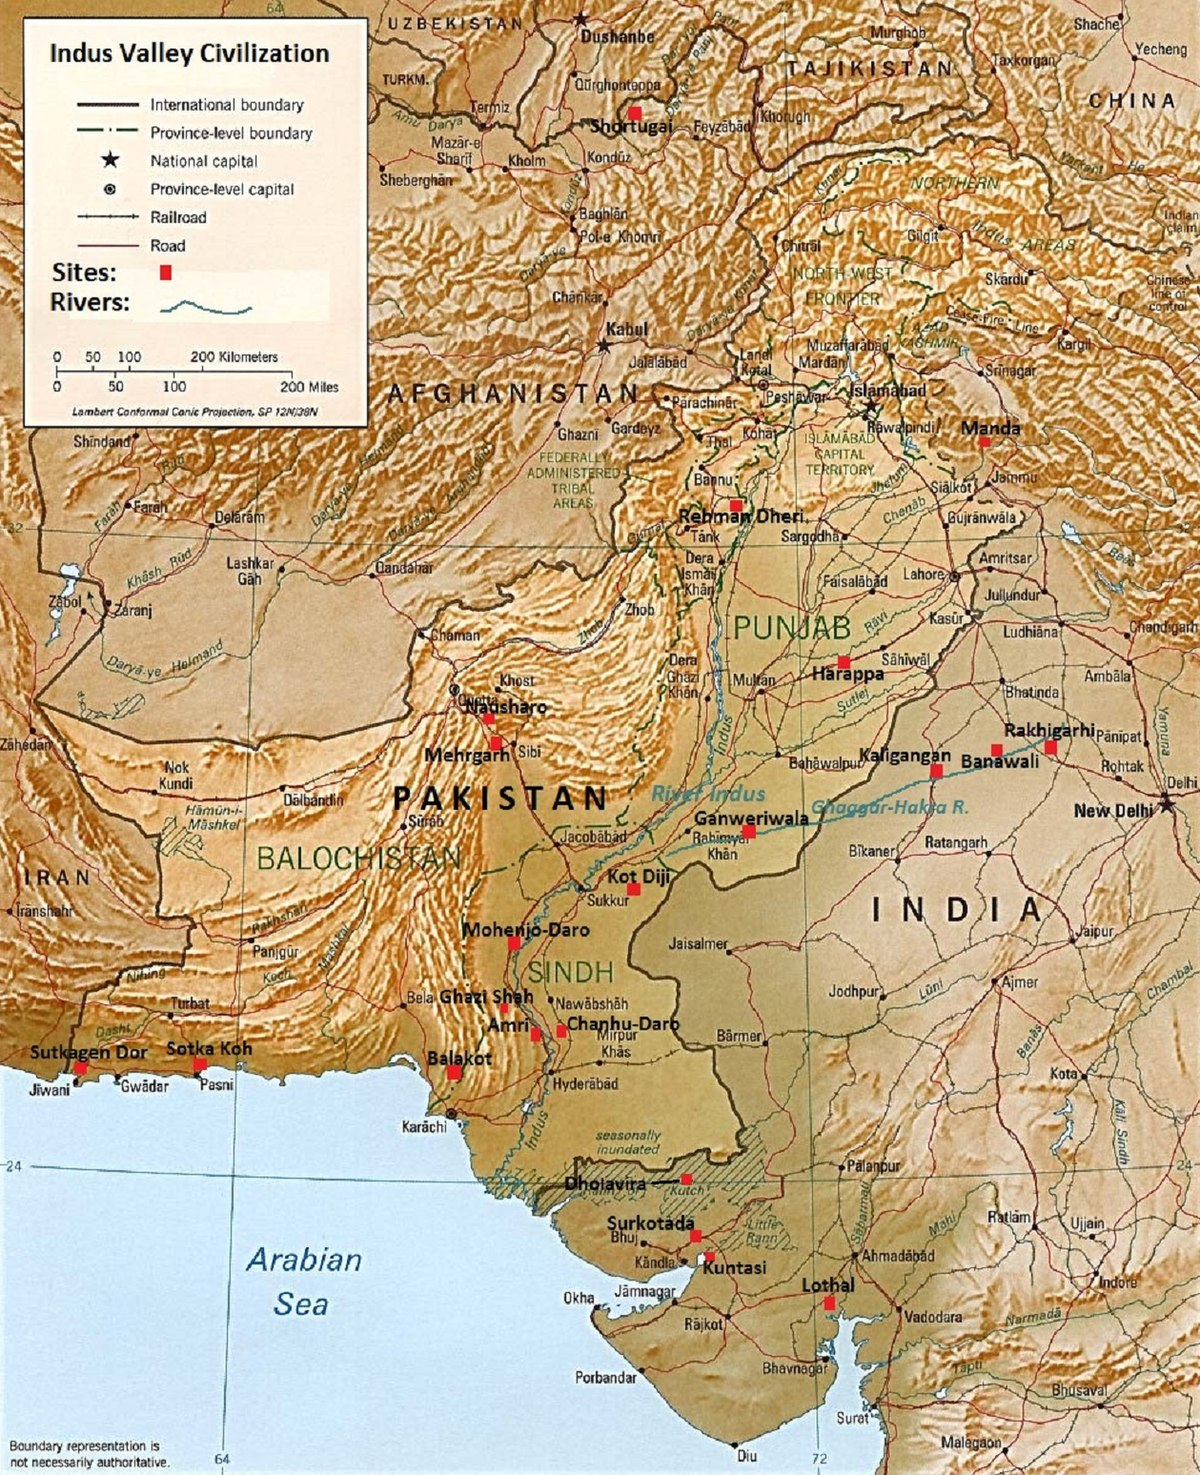 Indus Valley Civilisation - Wikipedia